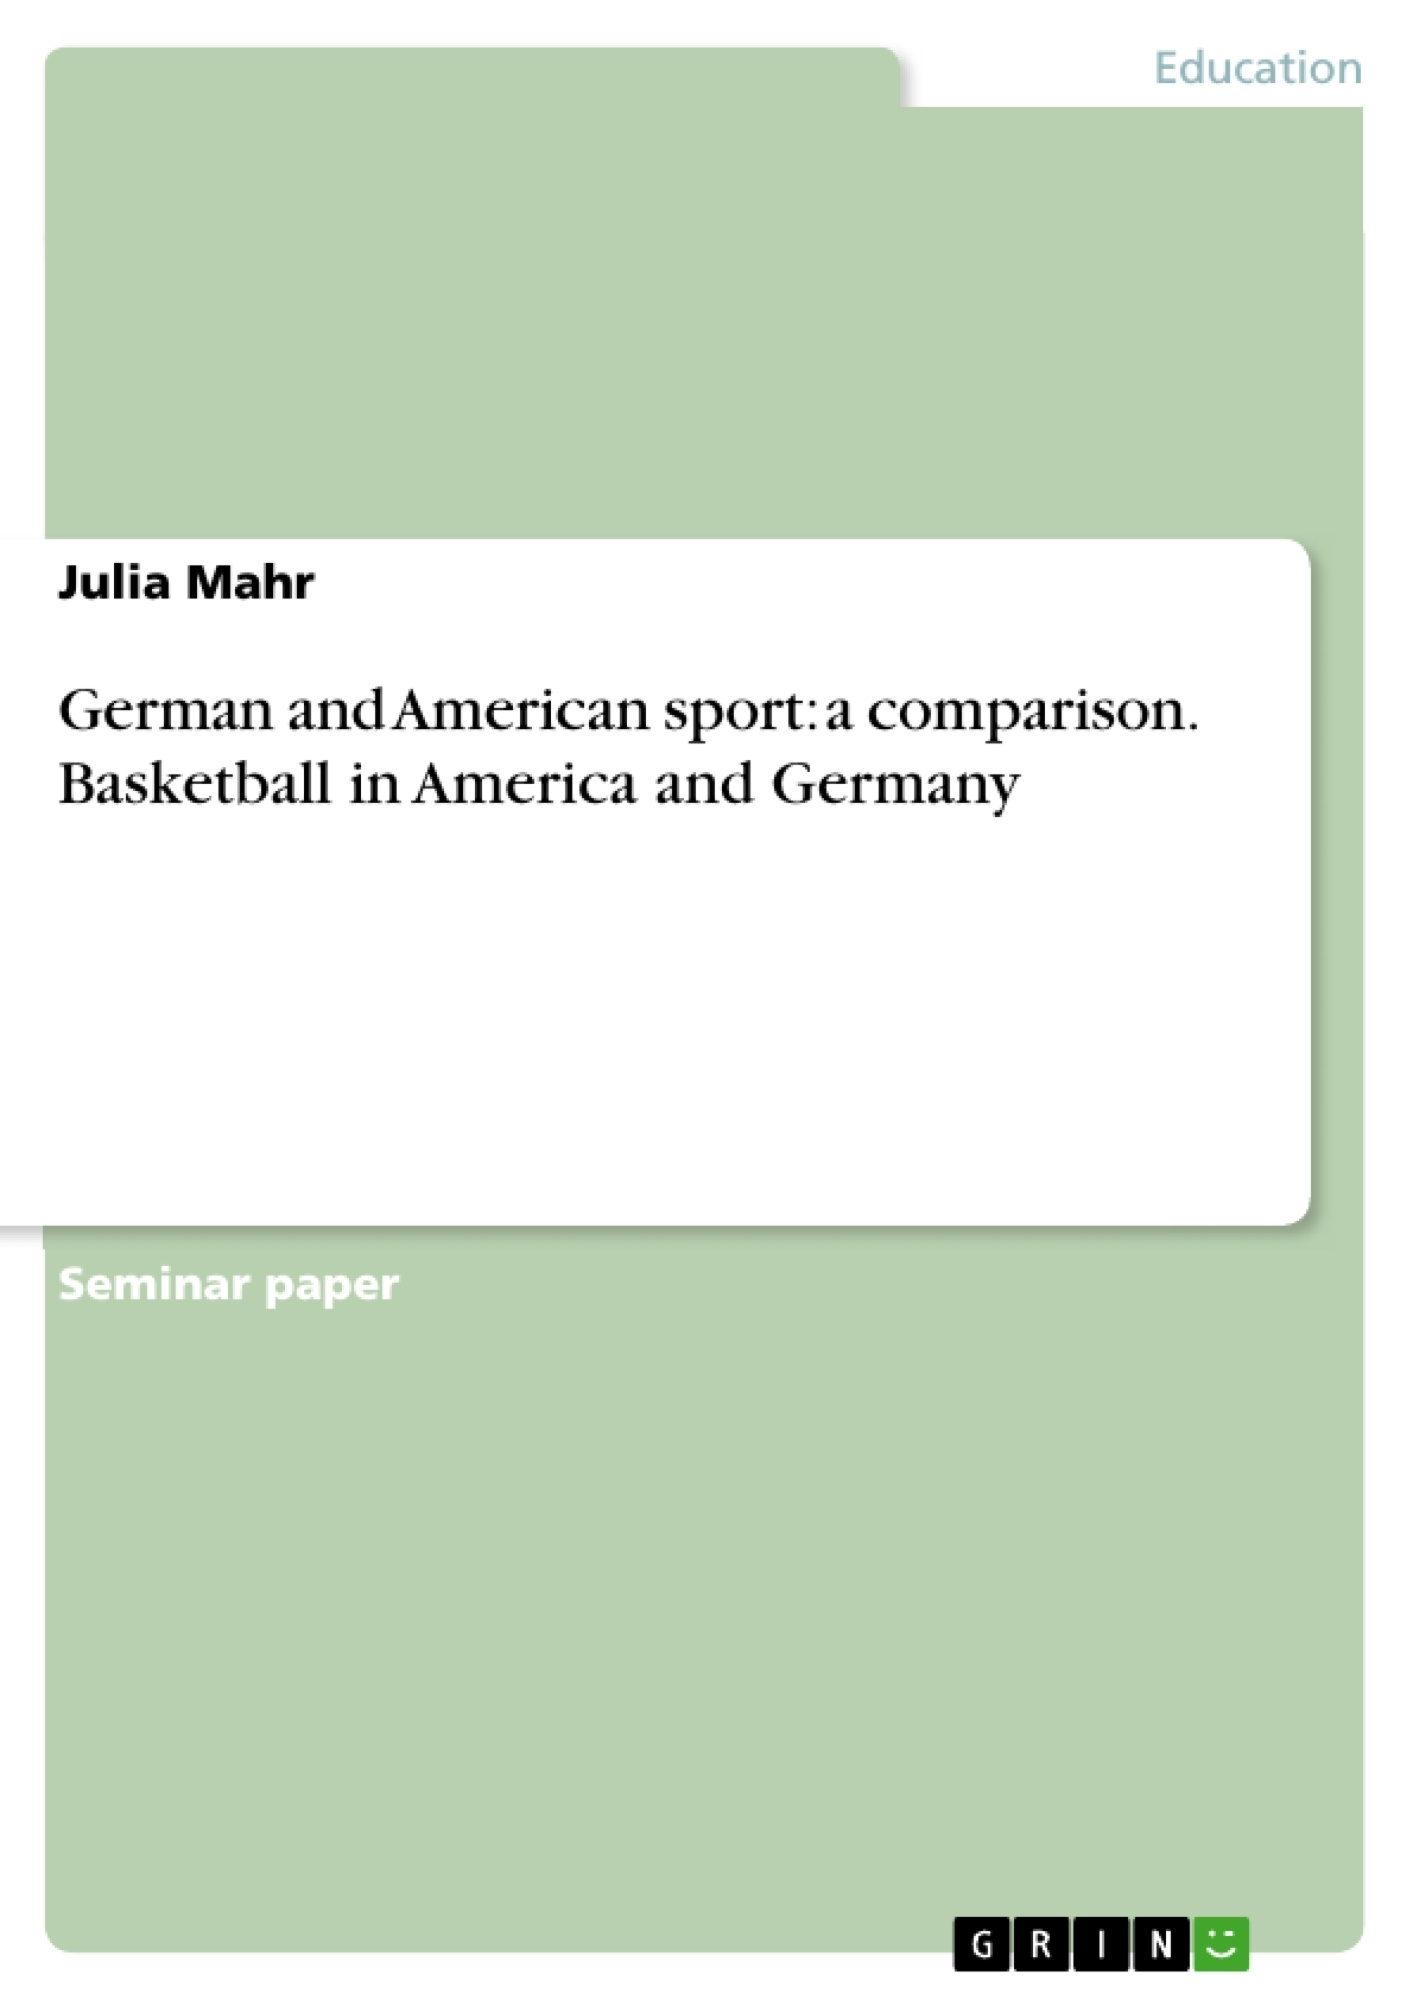 Title: German and American sport: a comparison. Basketball in America and Germany